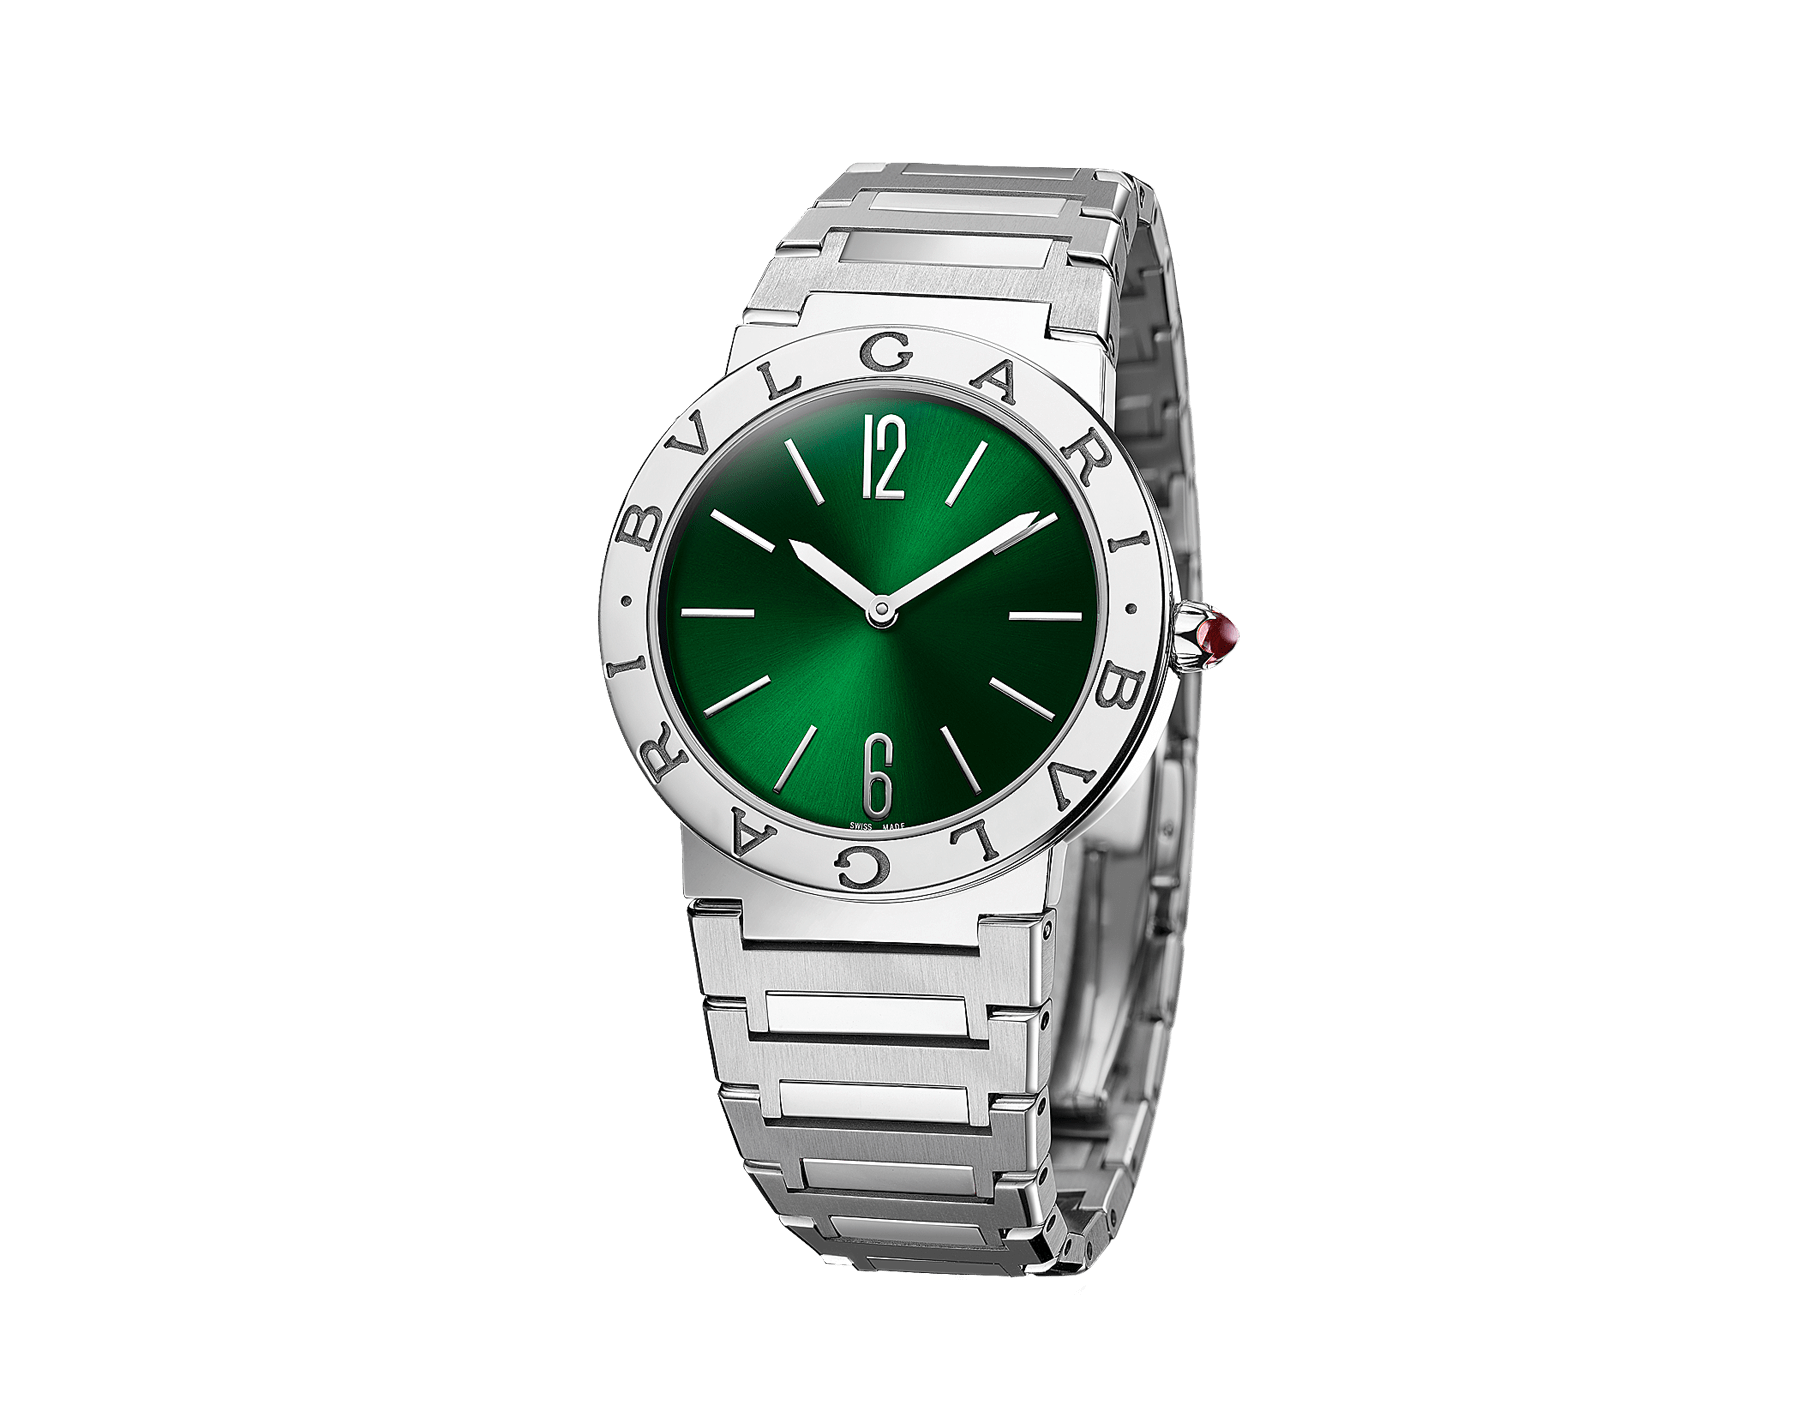 BVLGARI BVLGARI LADY watch with stainless steel case, stainless steel bracelet, stainless steel bezel engraved with double logo and green sun-brushed dial. 103066 image 2